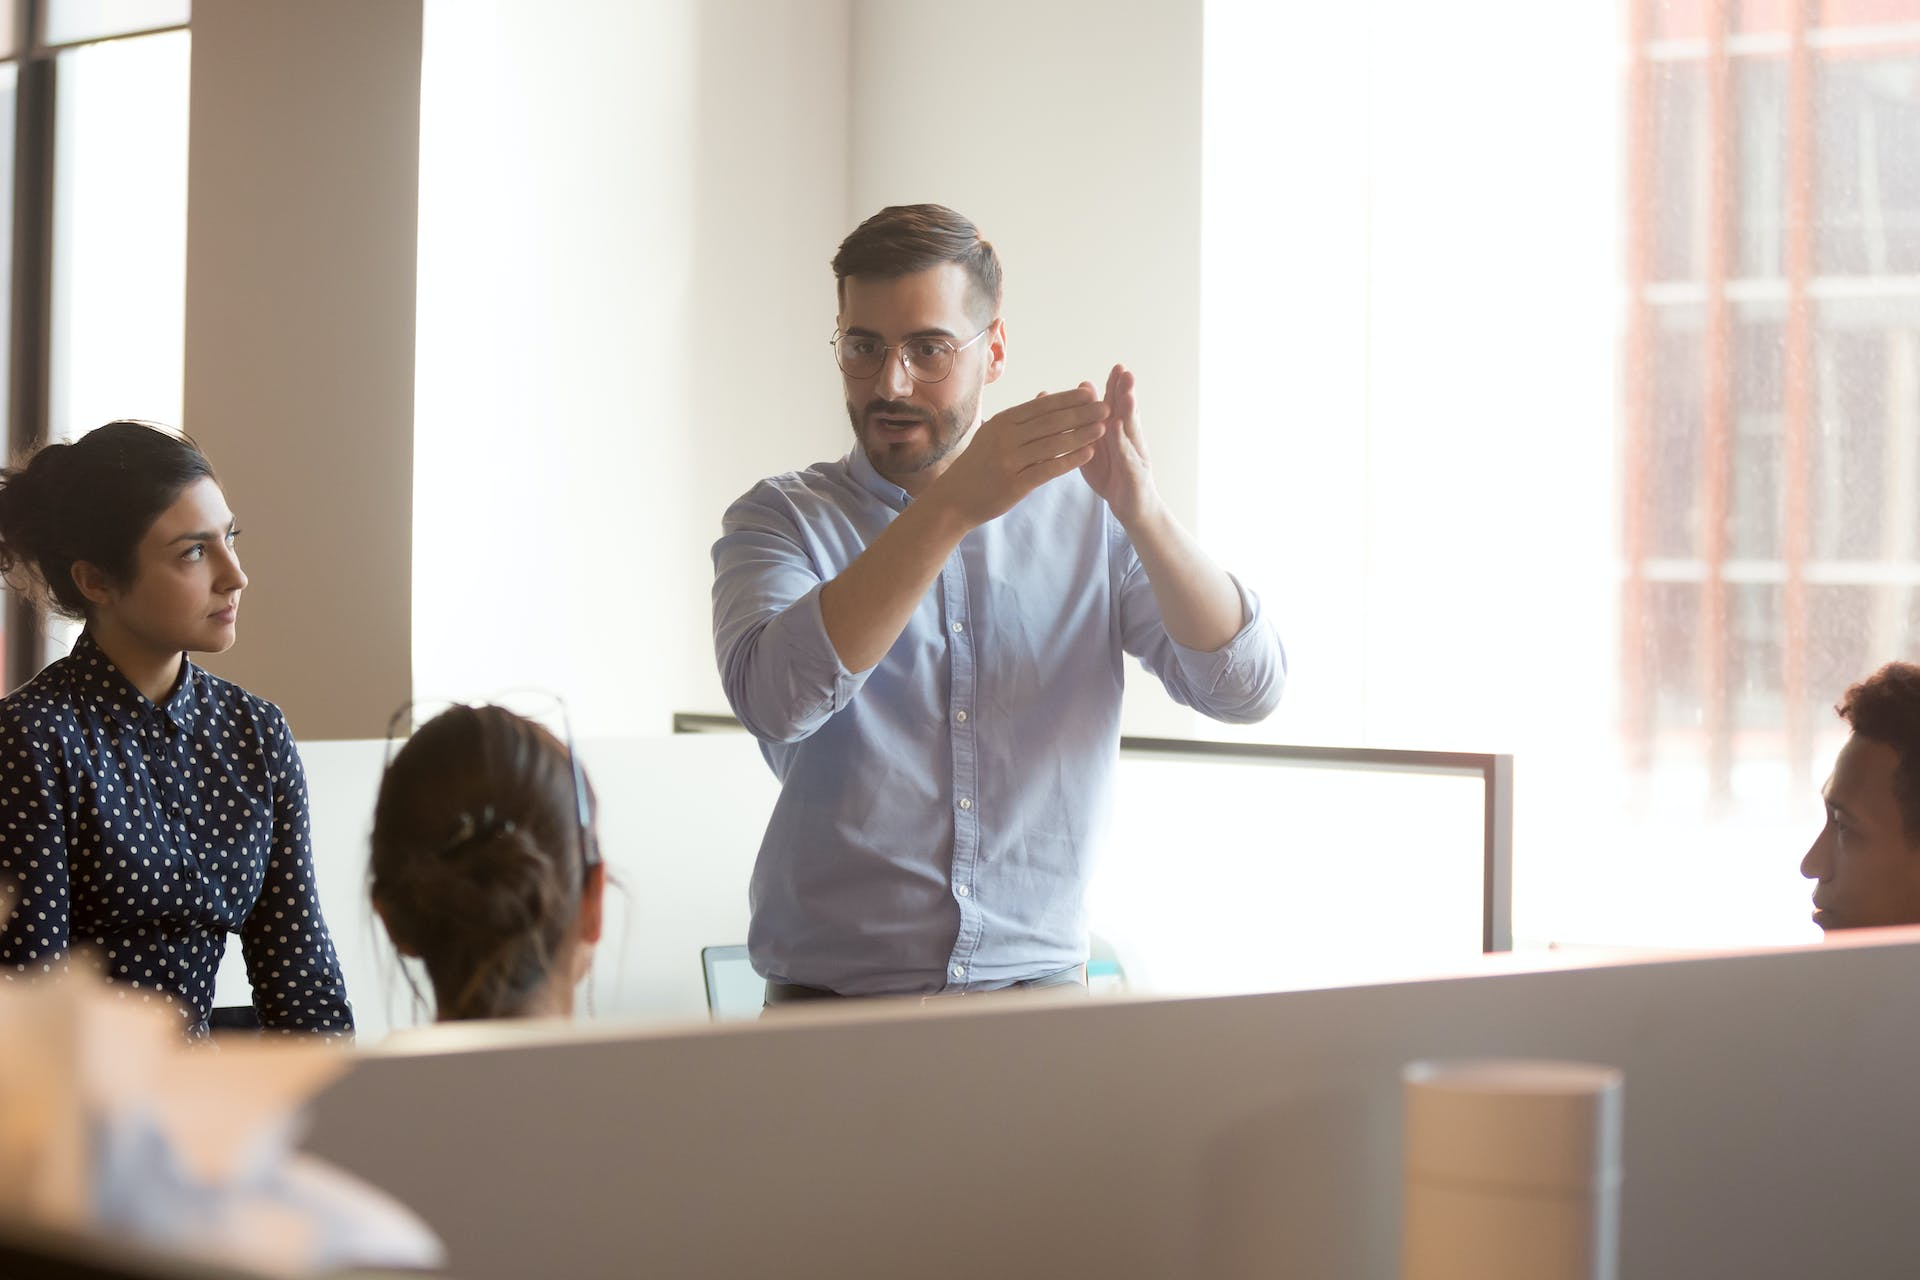 A team leader demonstrating a concept to his team using gestures